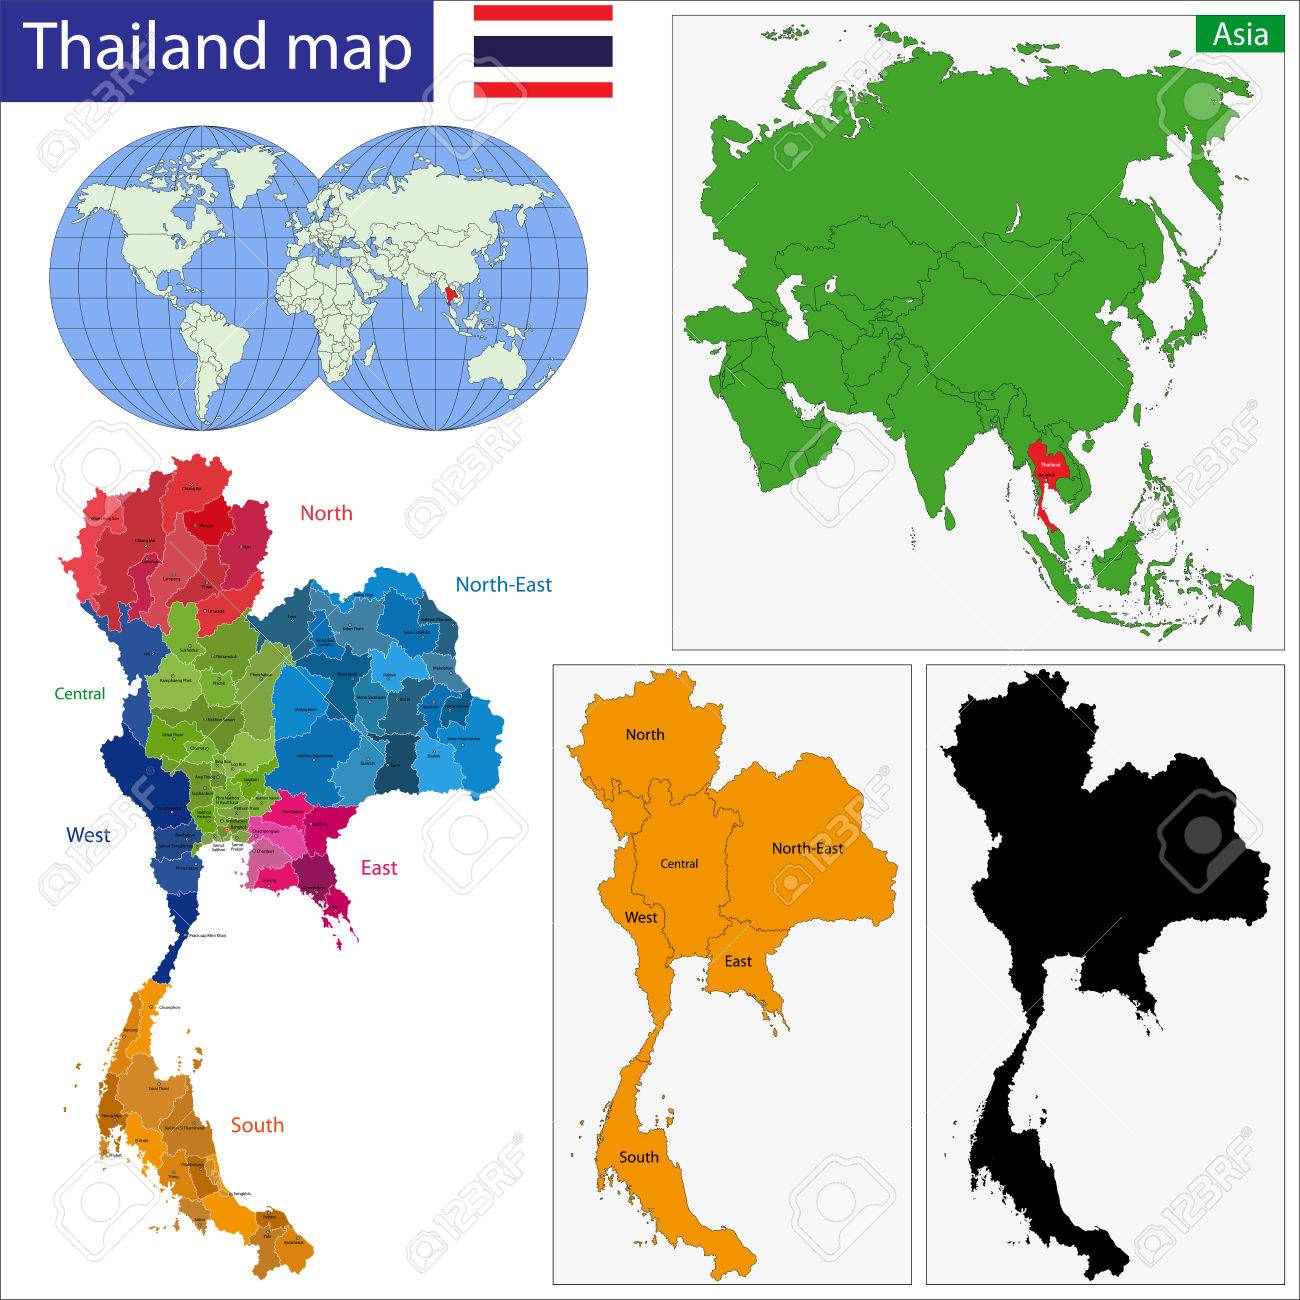 Map Of Kingdom Of Thailand With The Provinces Colored In Bright